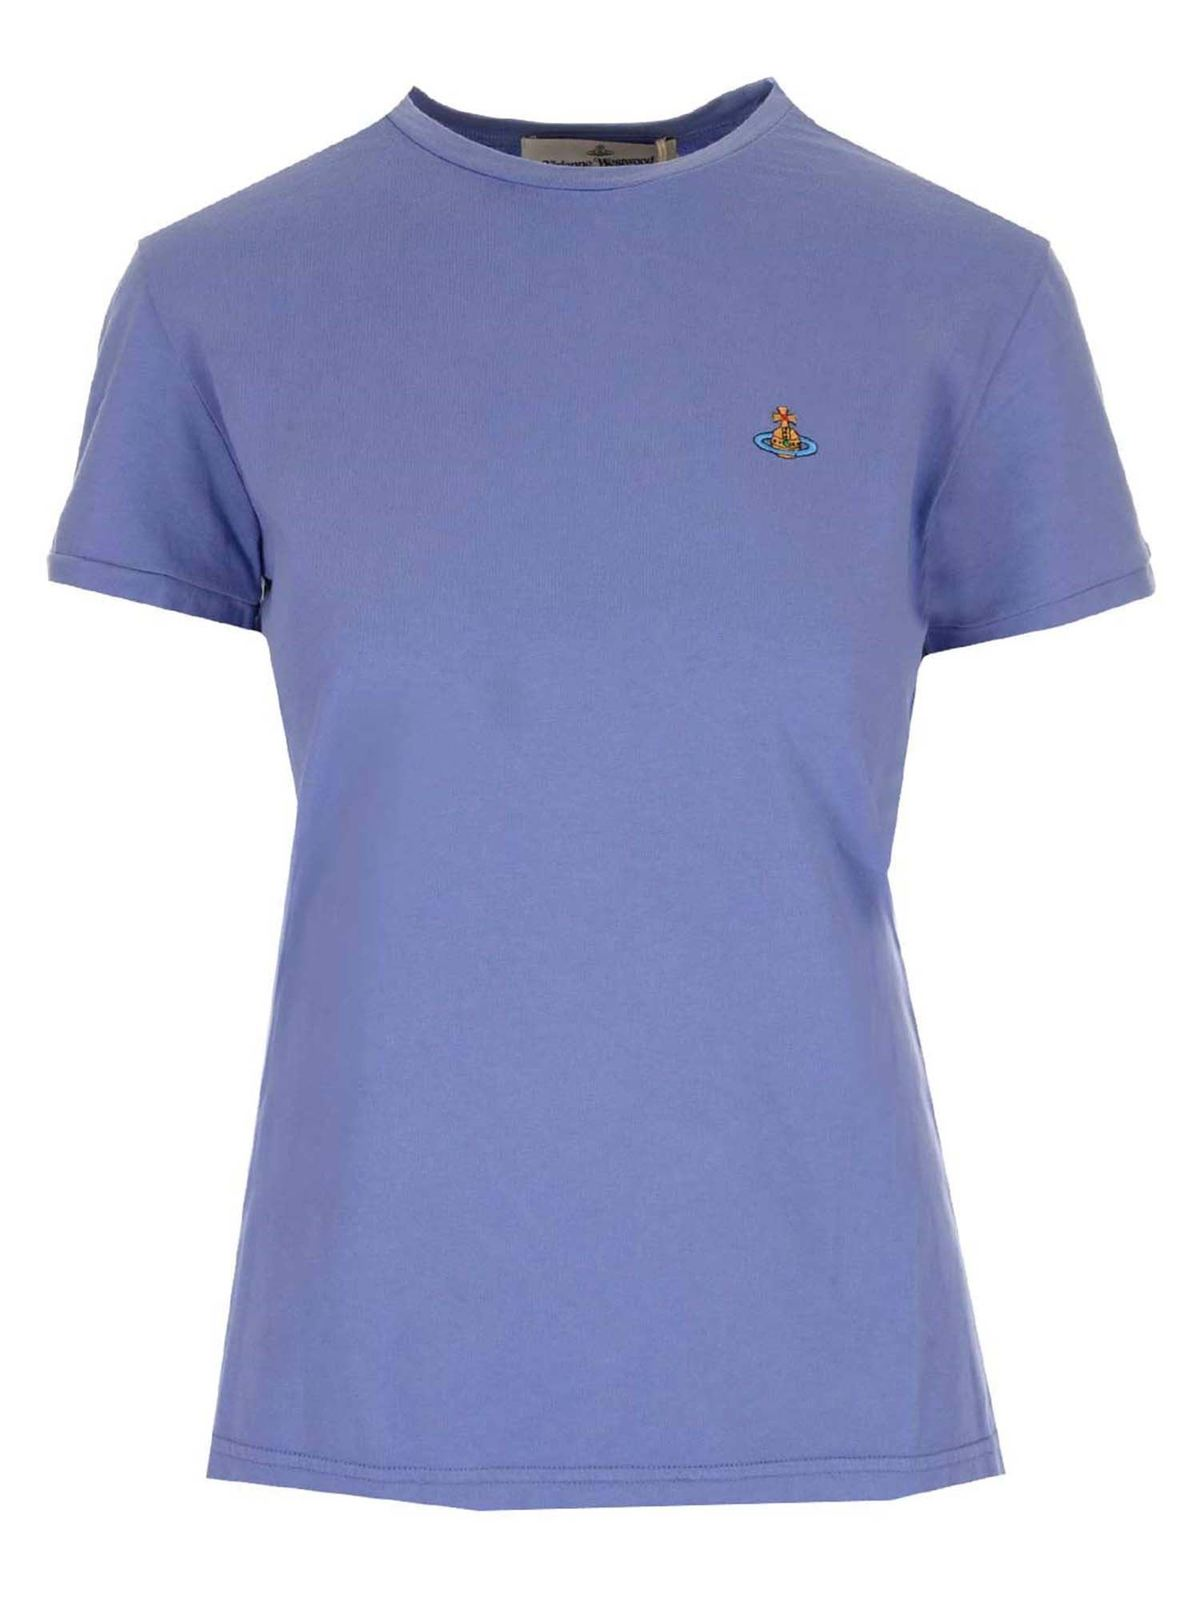 Vivienne Westwood ORB LOGO EMBROIDERY T-SHIRT IN PURPLE